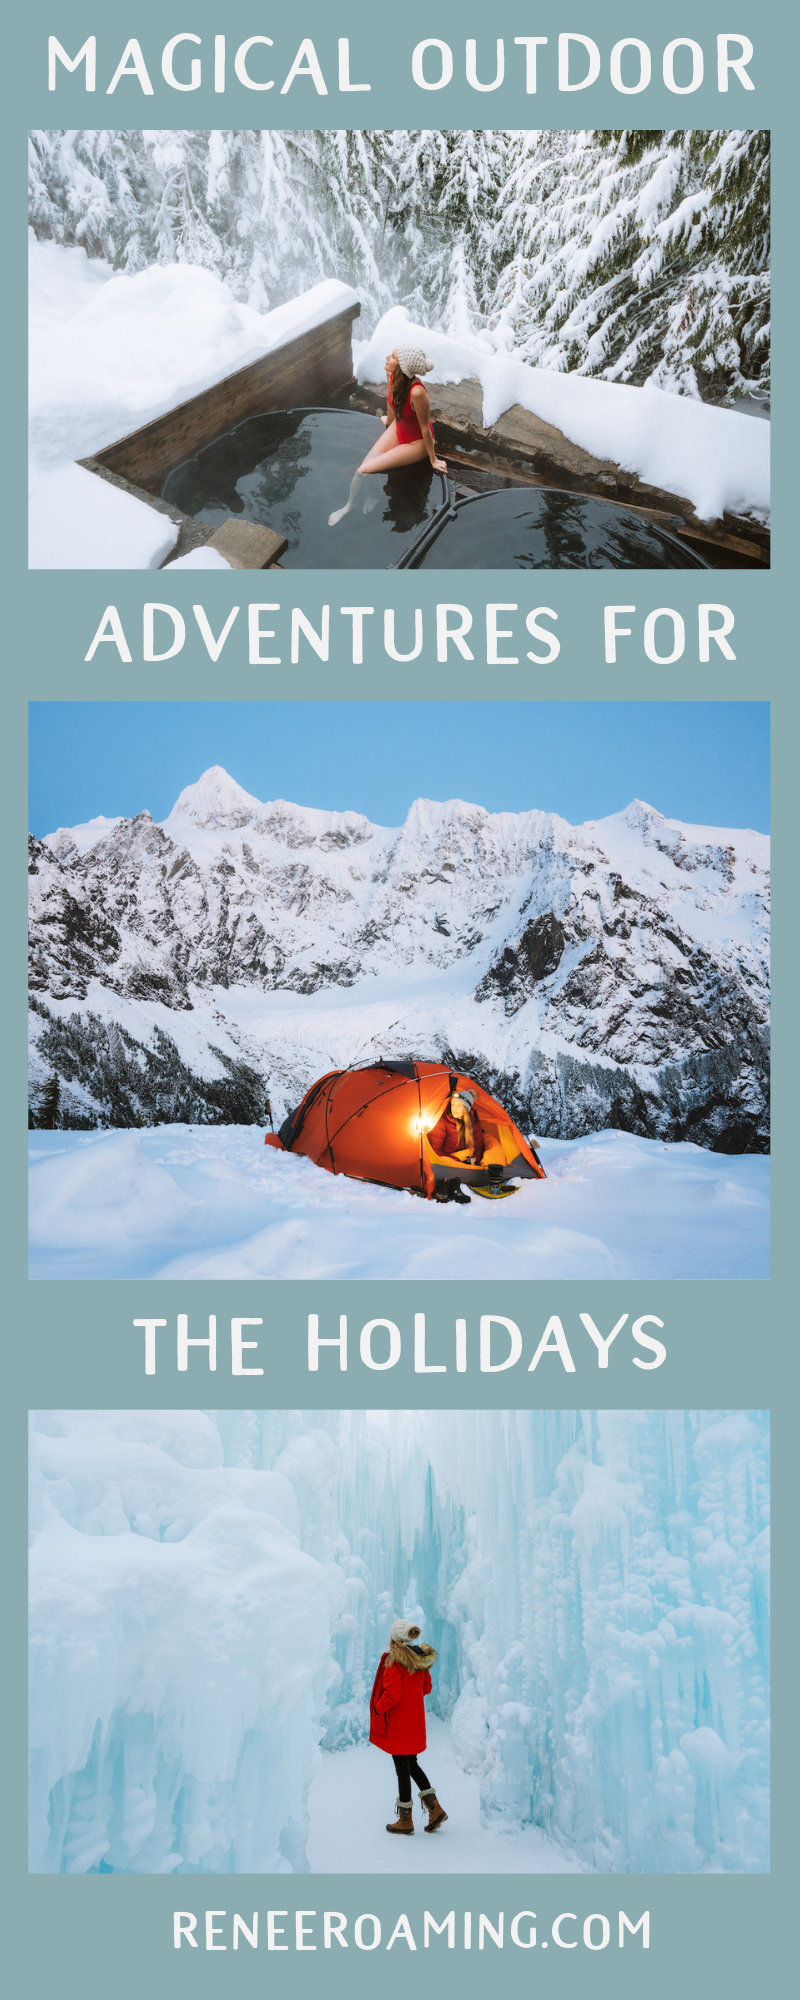 Photo of 7 Magical Winter Outdoor Adventures For The Holidays